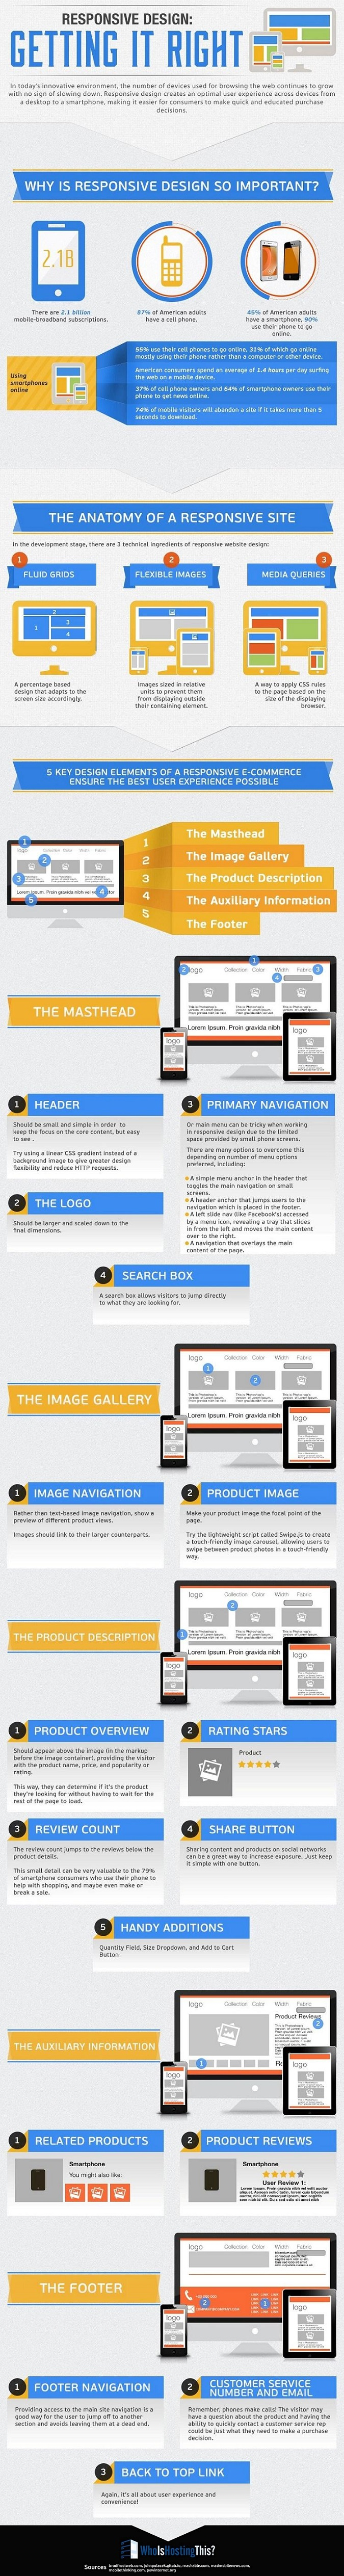 responsive-design-getting-it-right-infographic